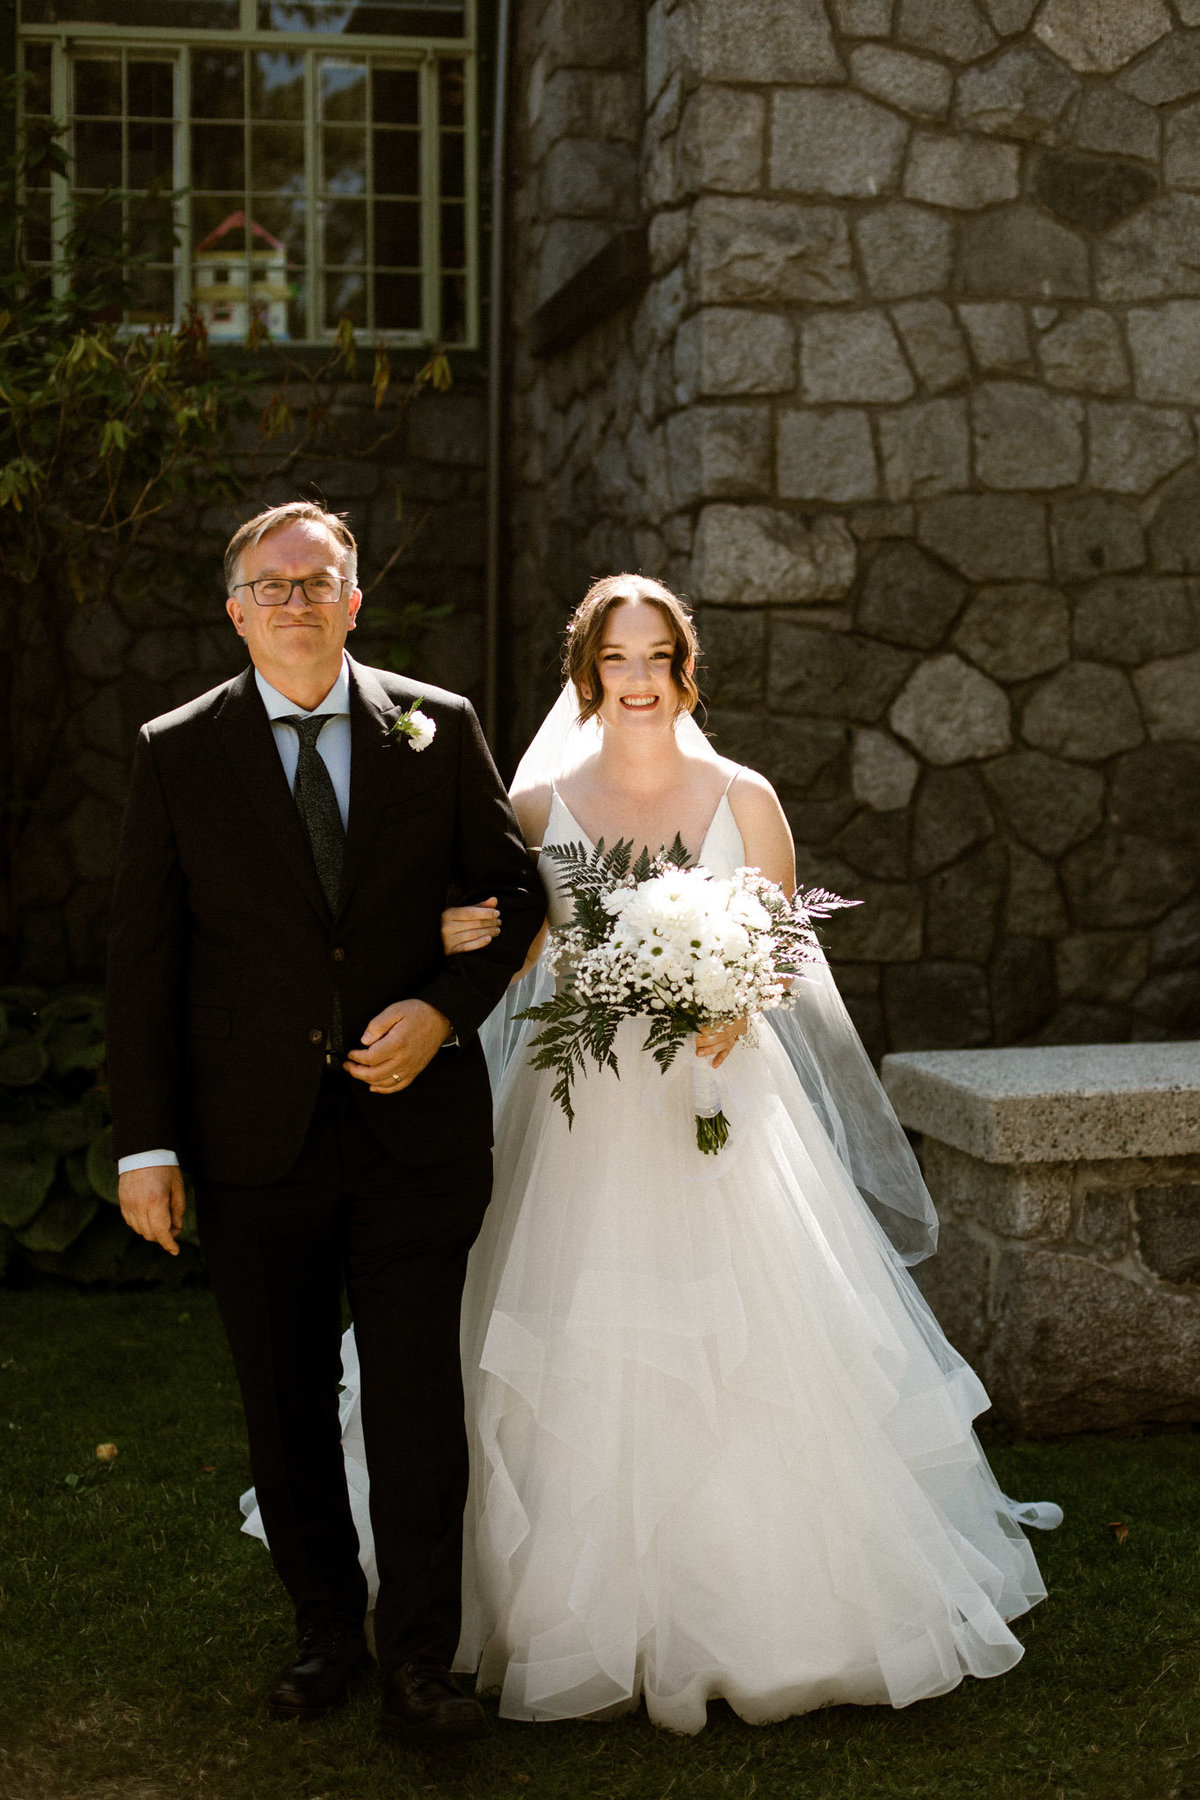 danika lee photography_kelowna vancouver okanagan summerland lake country wedding and elopement photographer candid film documentary colourful candid romantic dark and moody-420